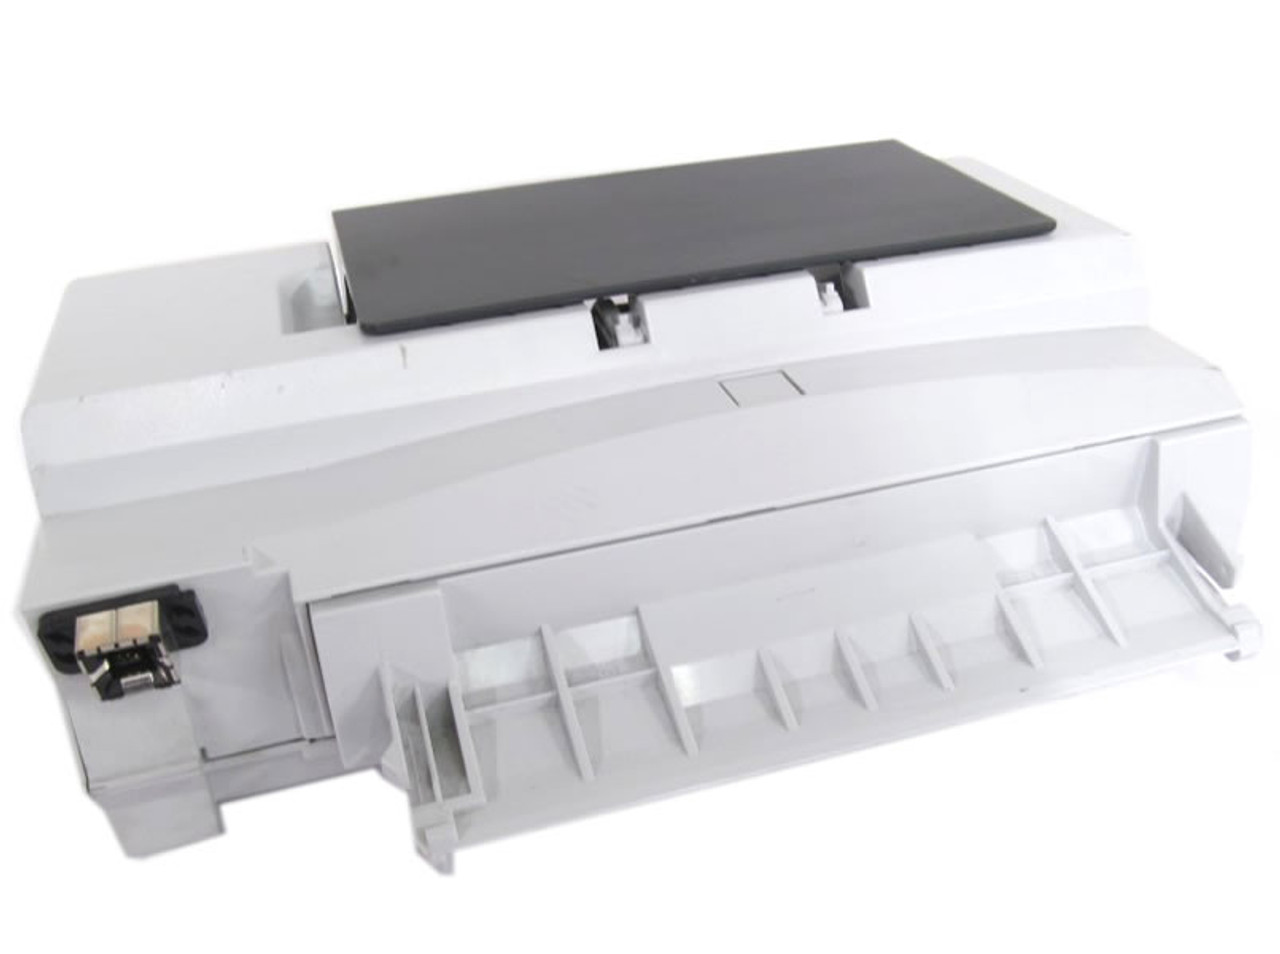 HP LaserJet 75-sheet Envelope Feeder for the P4014, P4015, P4515